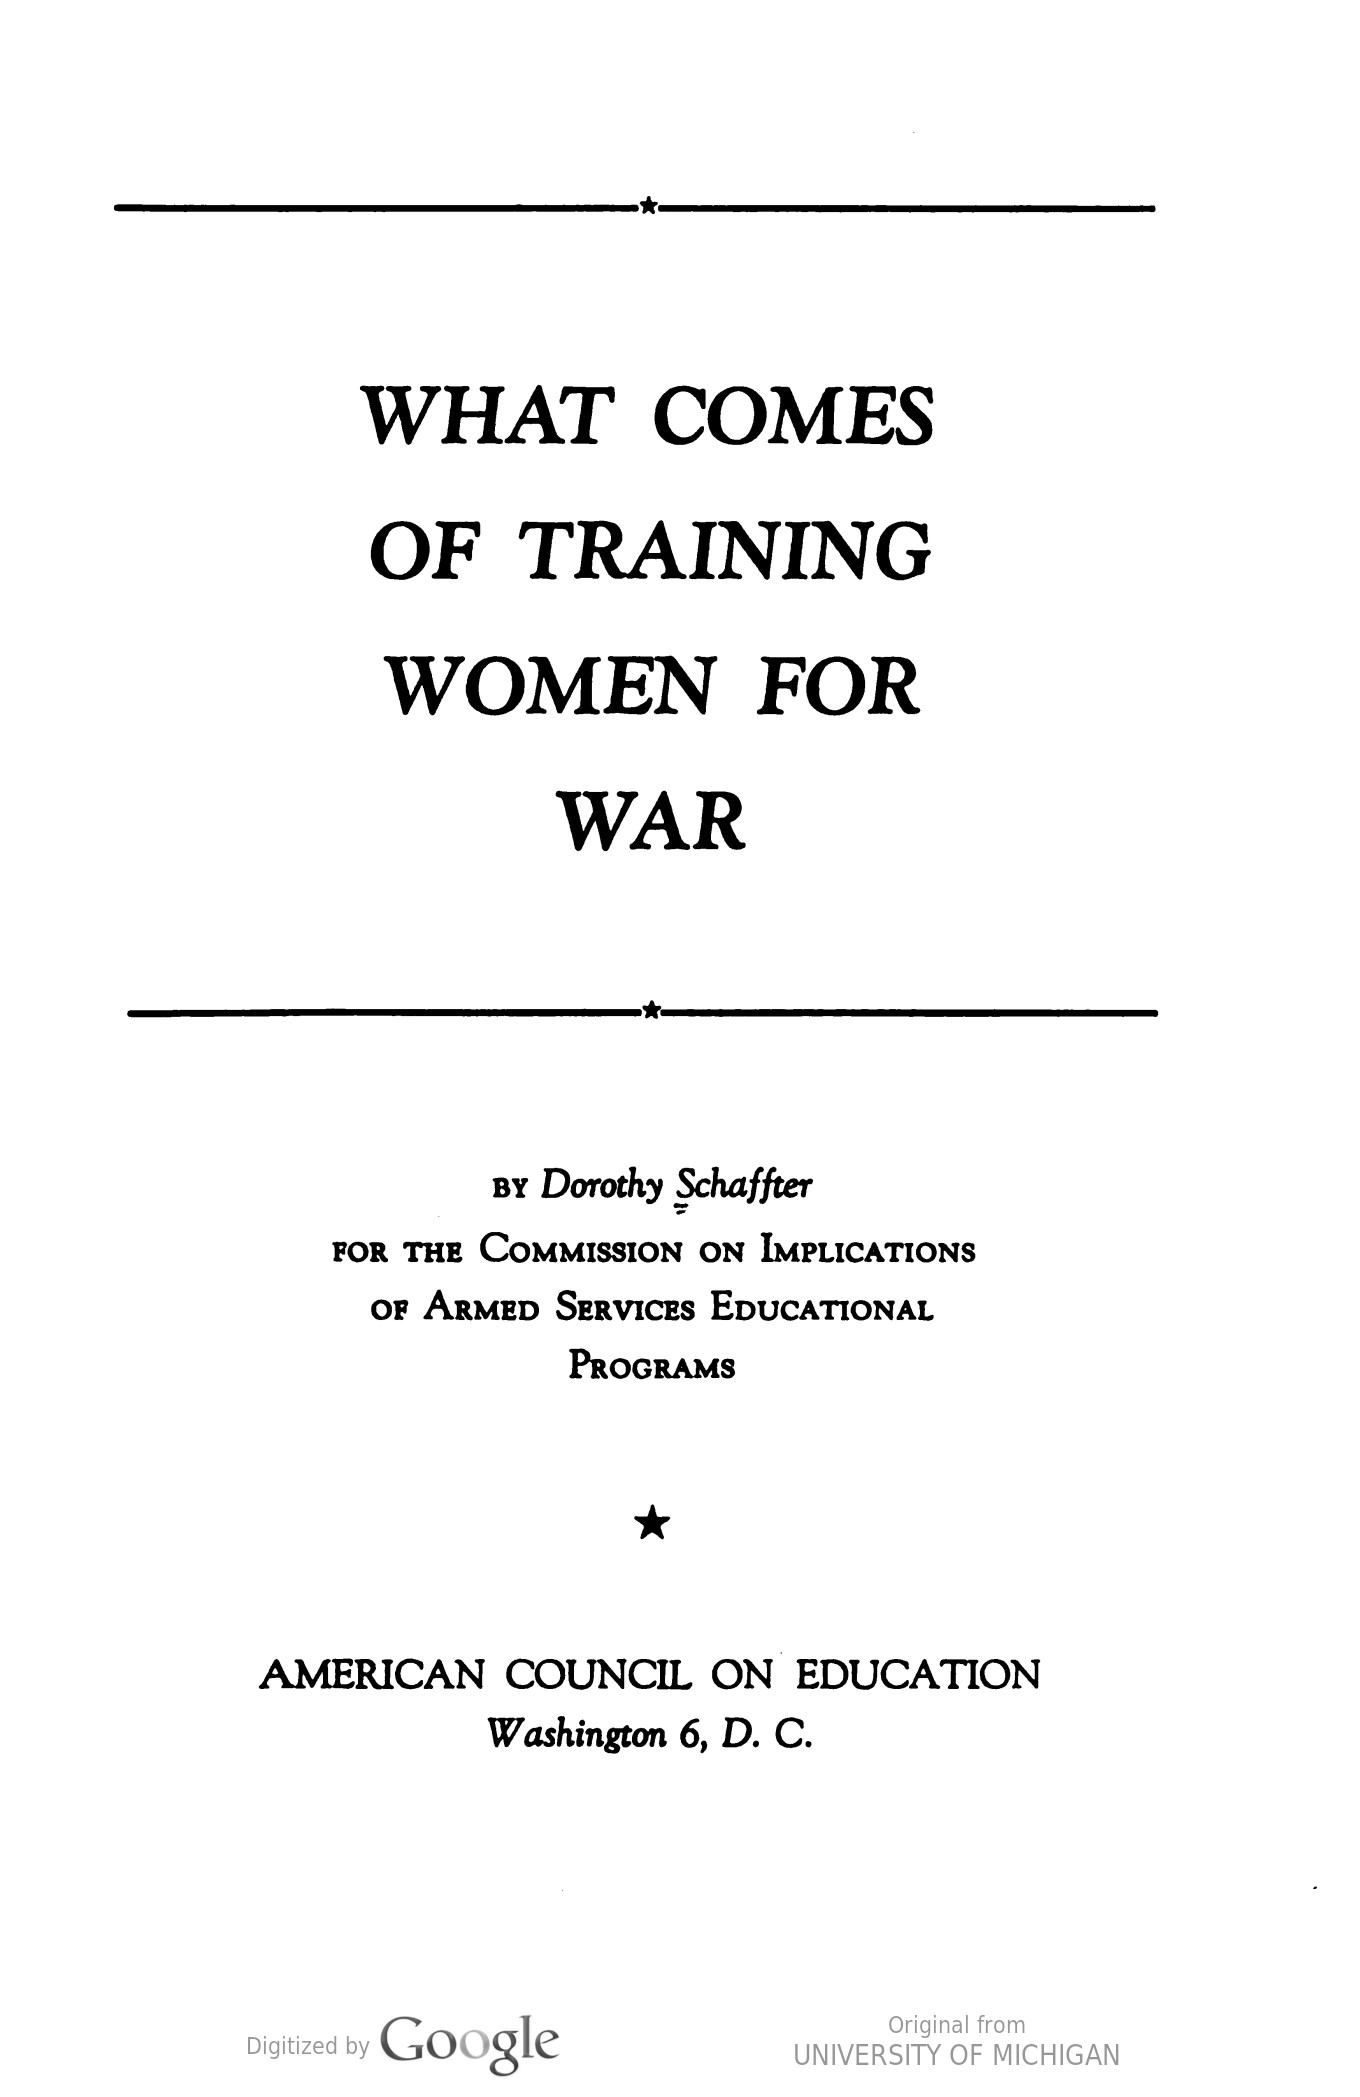 "Schaffter, D., American Council on Education. Commission on Implications of Armed Services Educational Programs. (1948). ""What Comes of Training Women for War."" Washington: American Council on Education. Retrieved from HathiTrust - Work documenting the educational techniques and training and of women for the World War II  WAVES, WAC, SPAR, and MCWR programs.  The work is divided into three parts - Overview, Women in Military Aviation, and Women in Medical, Nursing, and Related Services.  Includes statistical tables."